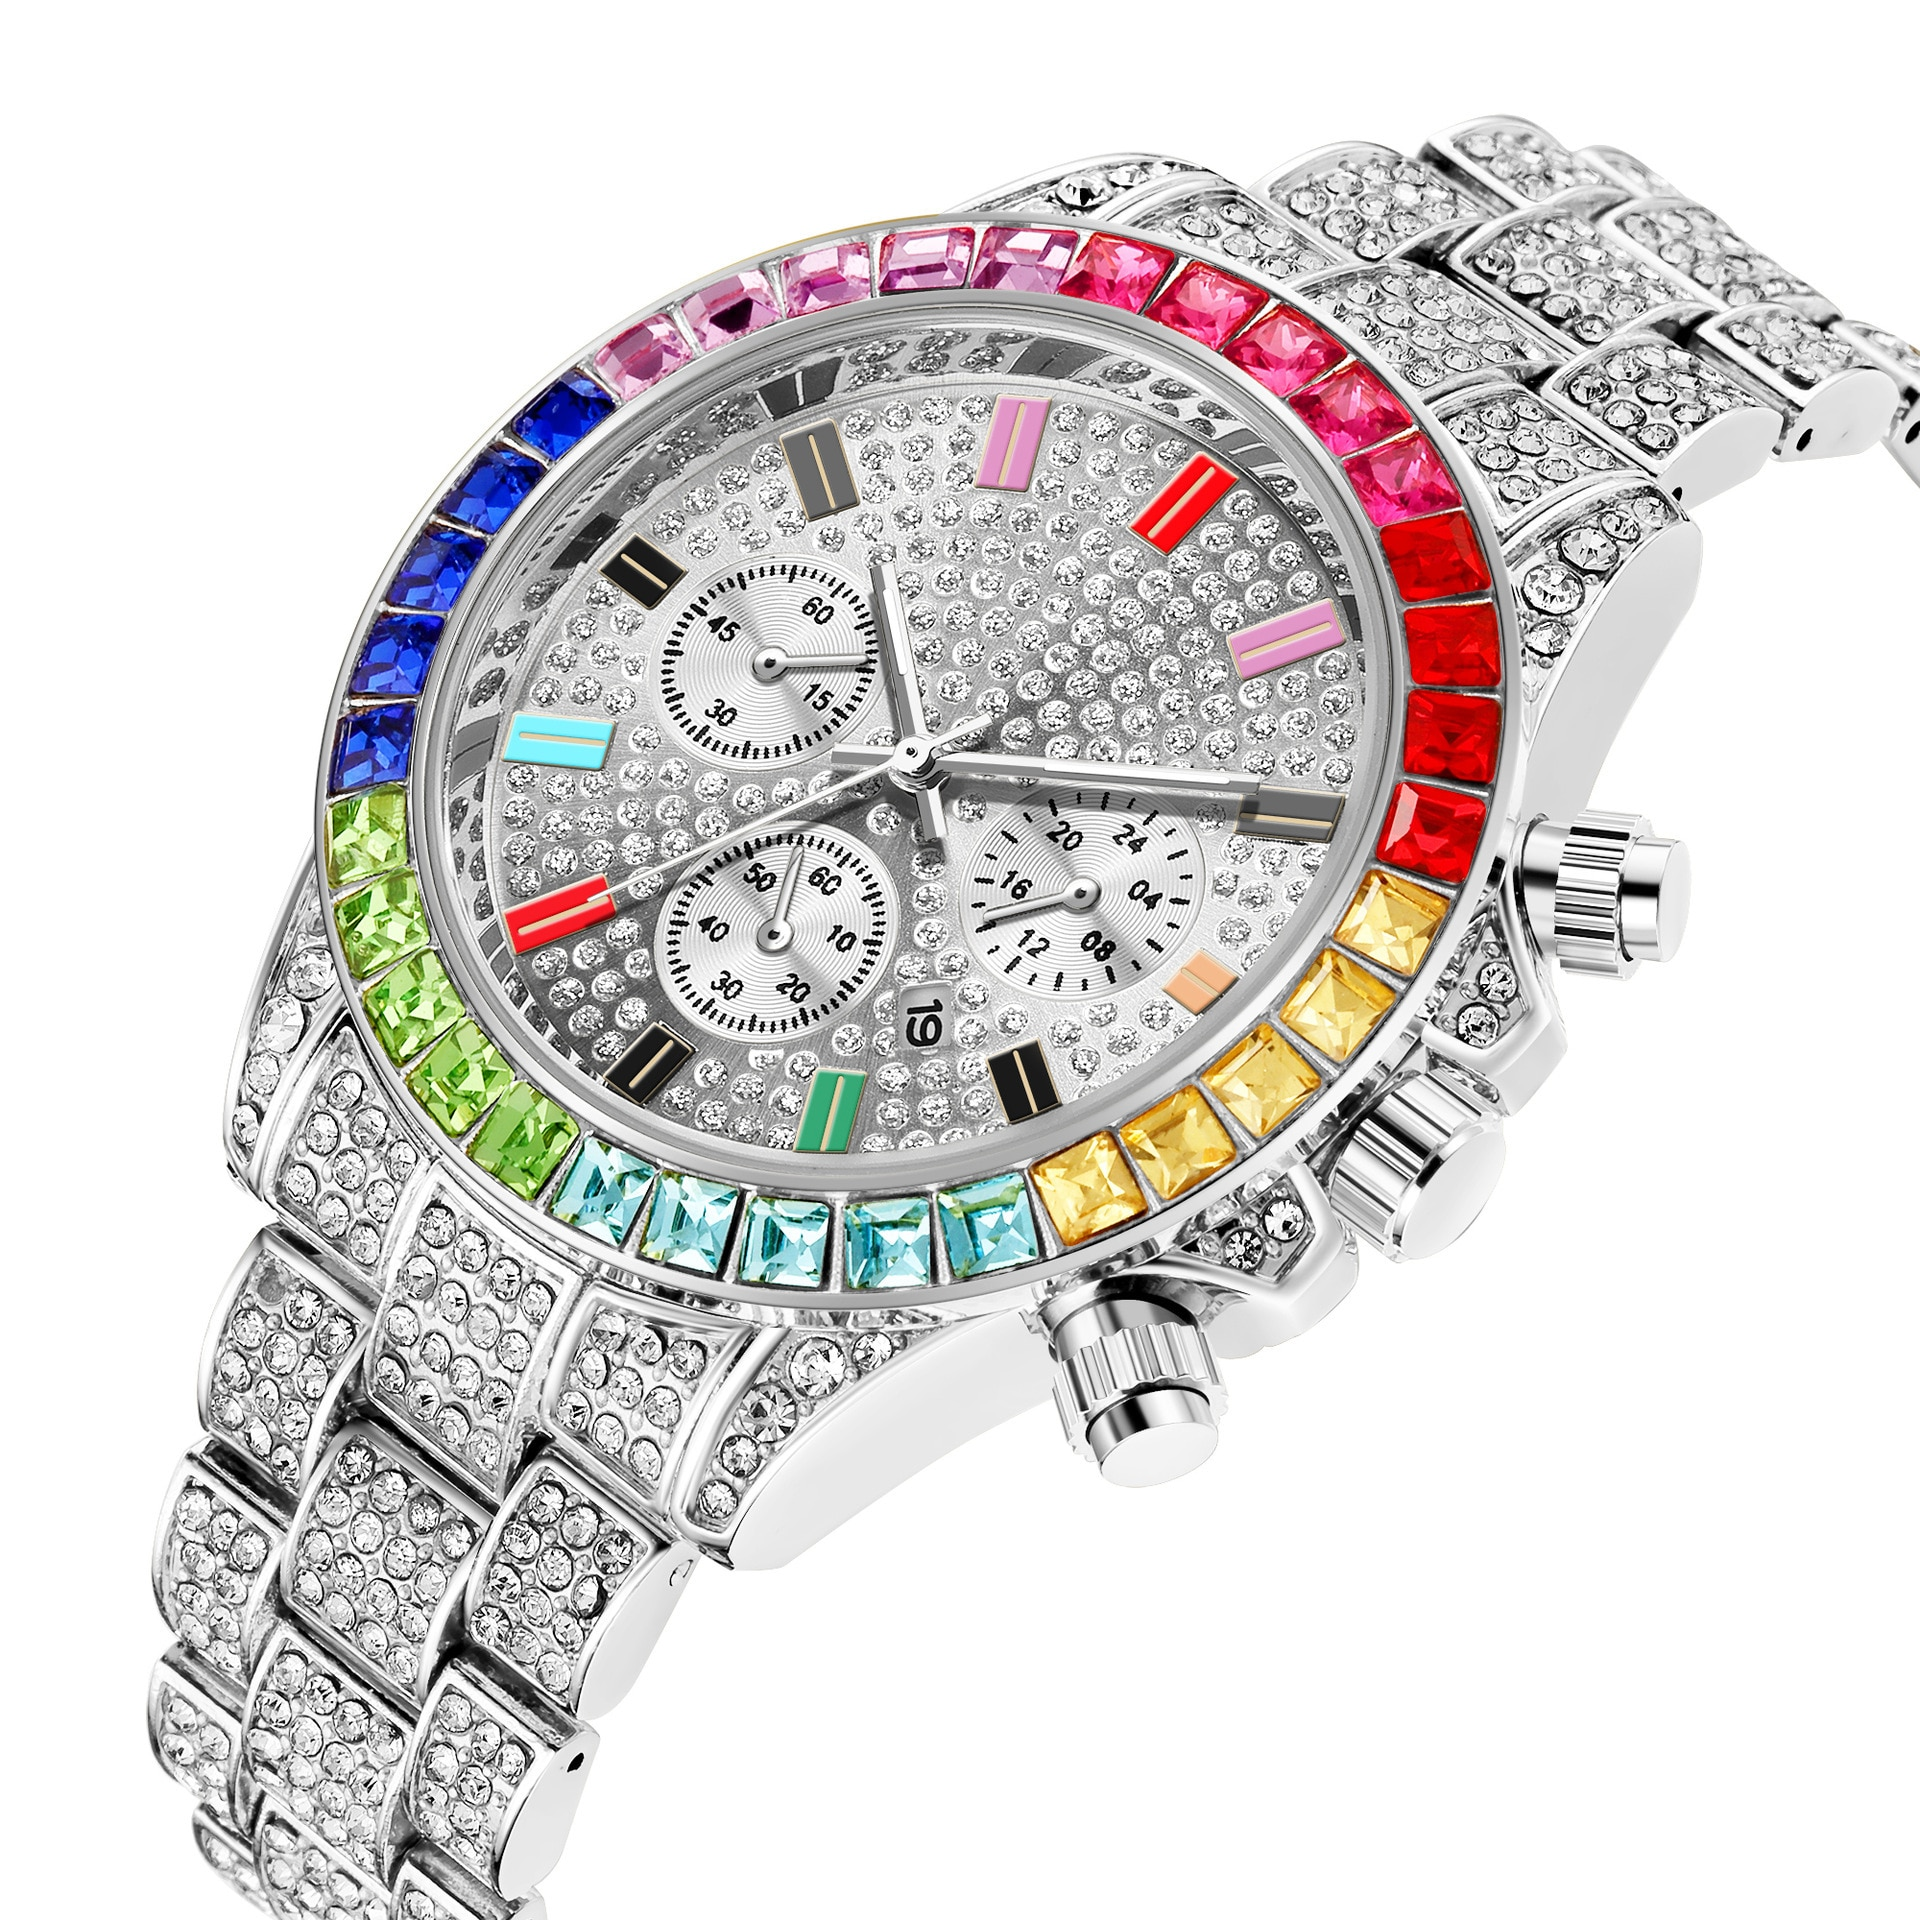 Colorful Diamond Watch Top Brand for Men Luxury Iced Out Gold Watch Hip Hop Quartz Wristwatch Relogio Masculino Mens Watch Reloj watch for women top brand luxury iced out watch diamond watch for men iced out cuban link chain necklace wristwatch man hiphop